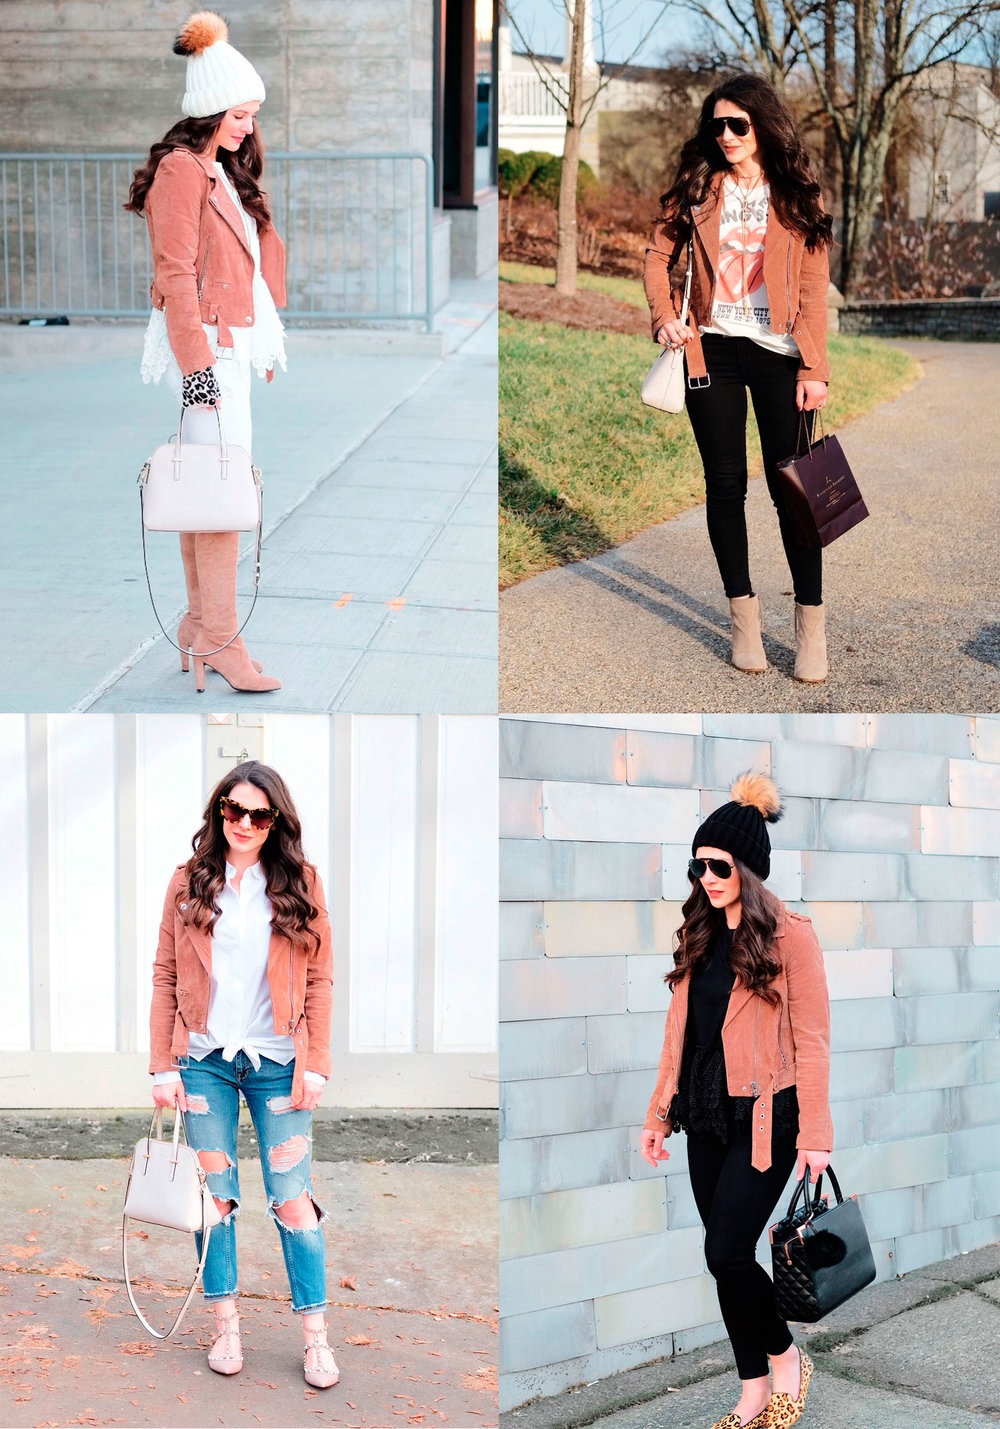 c51f4a98543e Cute winter outfits. 4 ways to style the Blank NYC morning suede moto  jacket.